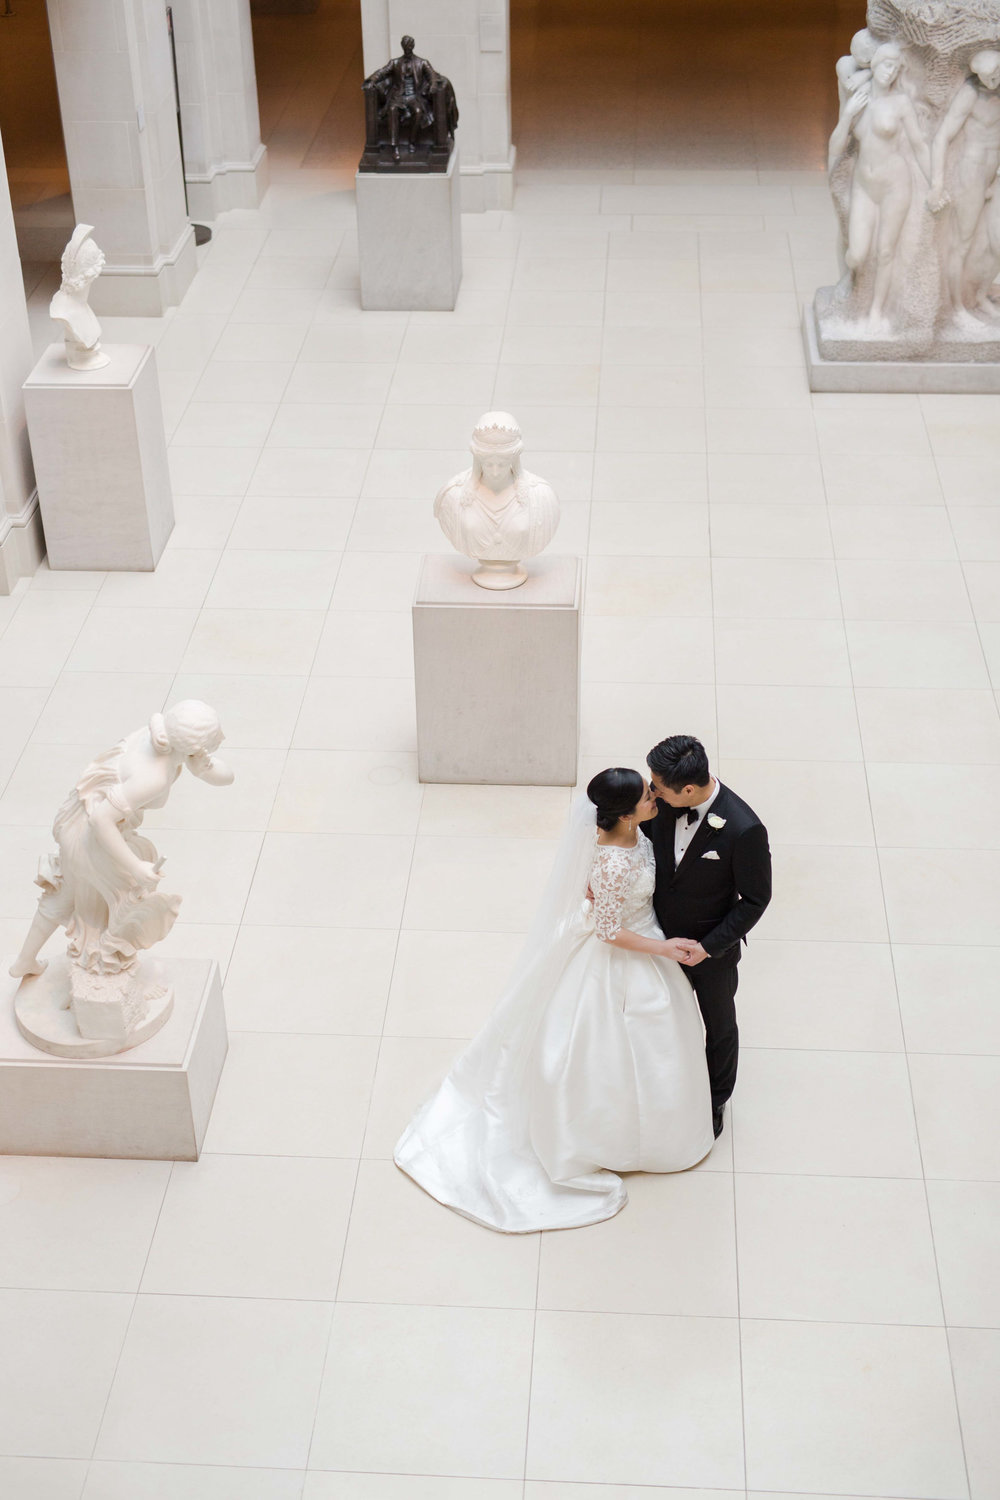 Wedding photography at the Art Institute of Chicago.